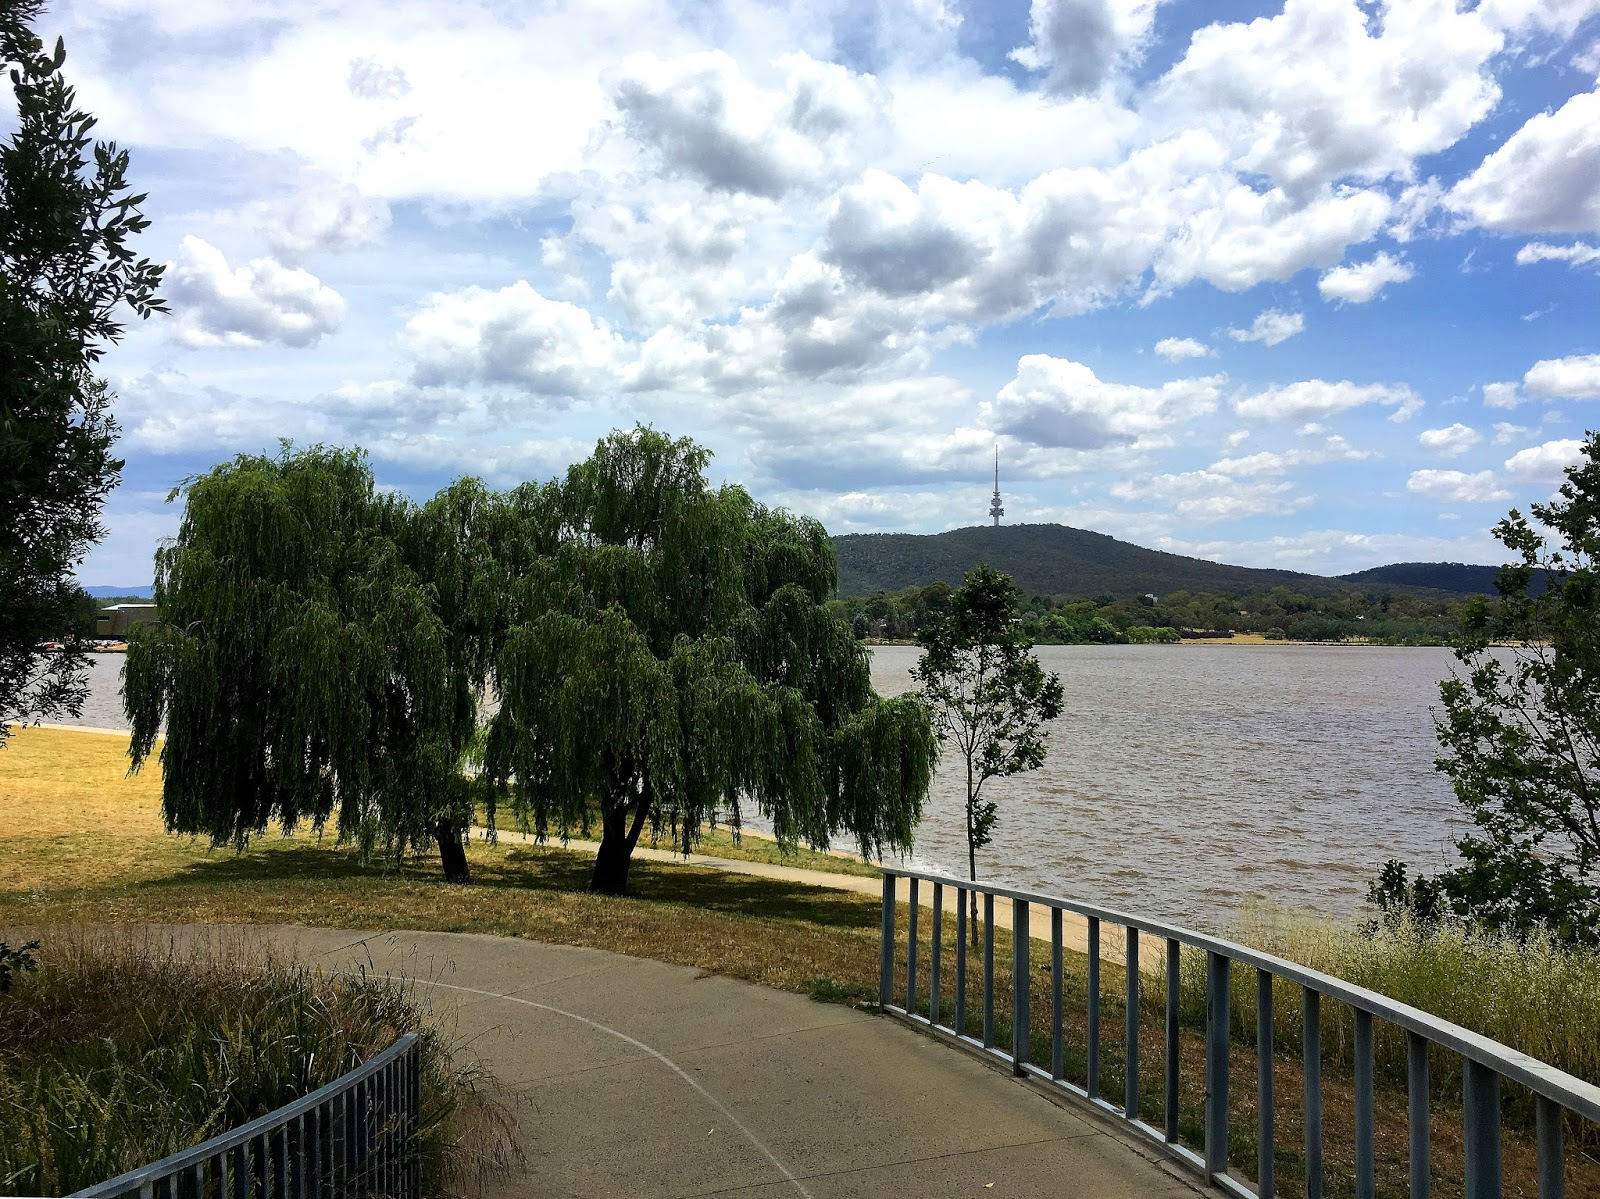 Canberra is not only the capital of Australia, but also surprisingly full of culture and history complimented with good wine and superb hiking.